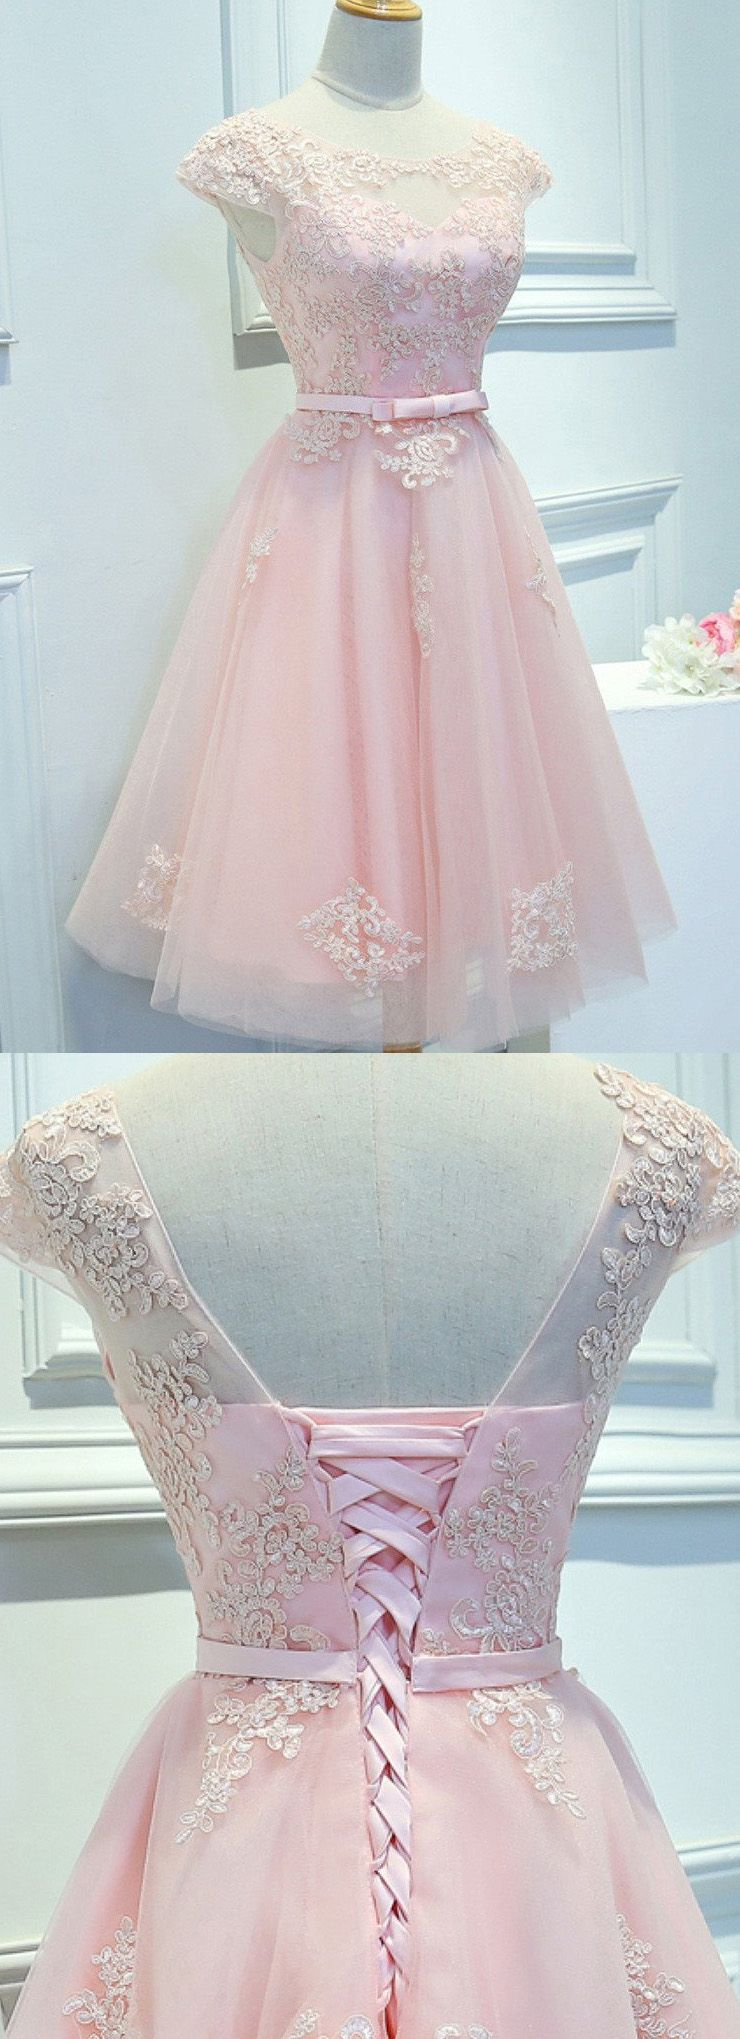 Custom made cap sleeve dresses short pink homecoming prom dresses